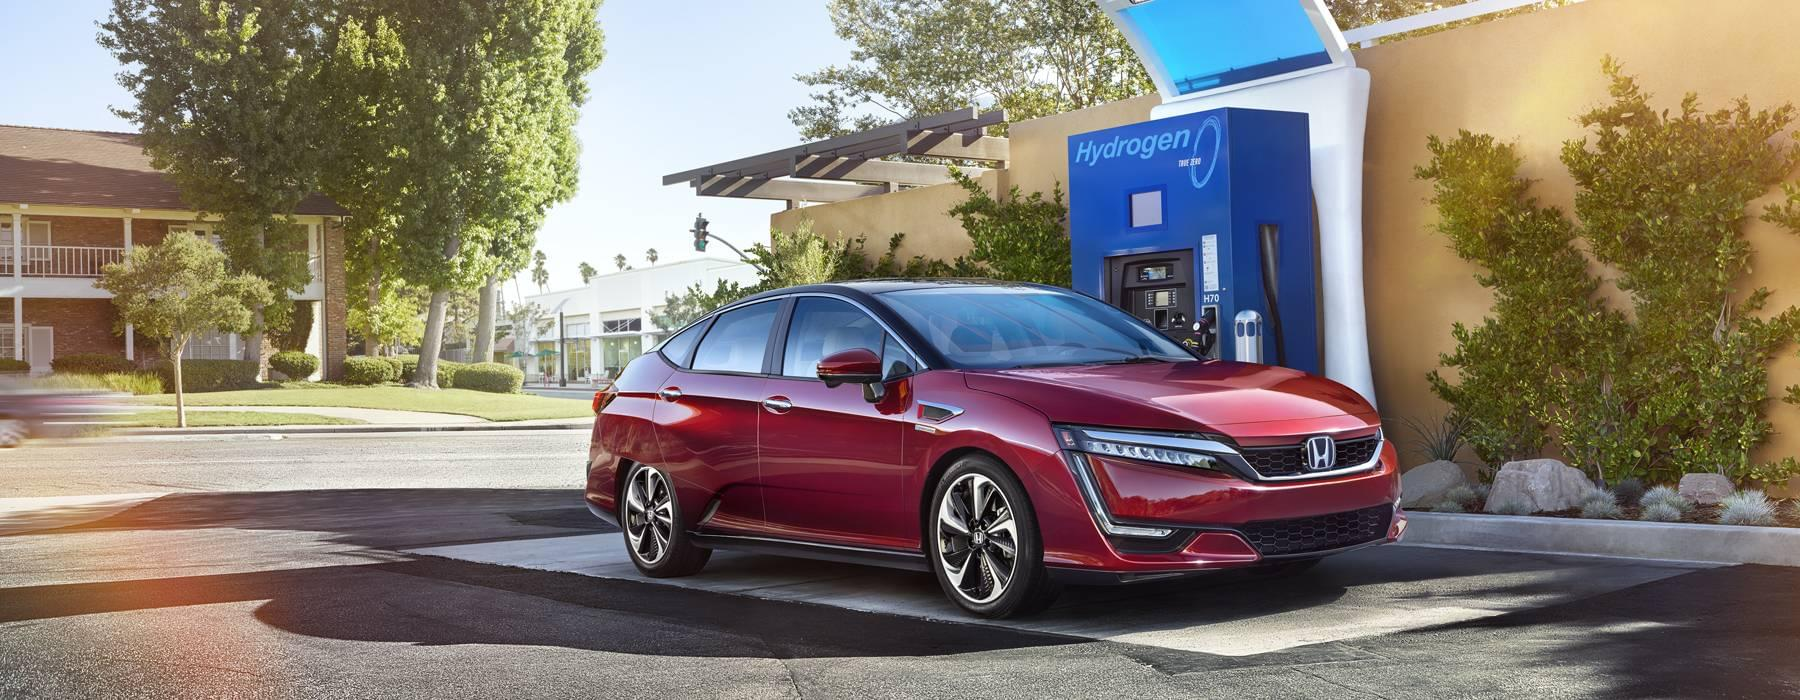 2017 Honda Clarity Fuel Cell Slider